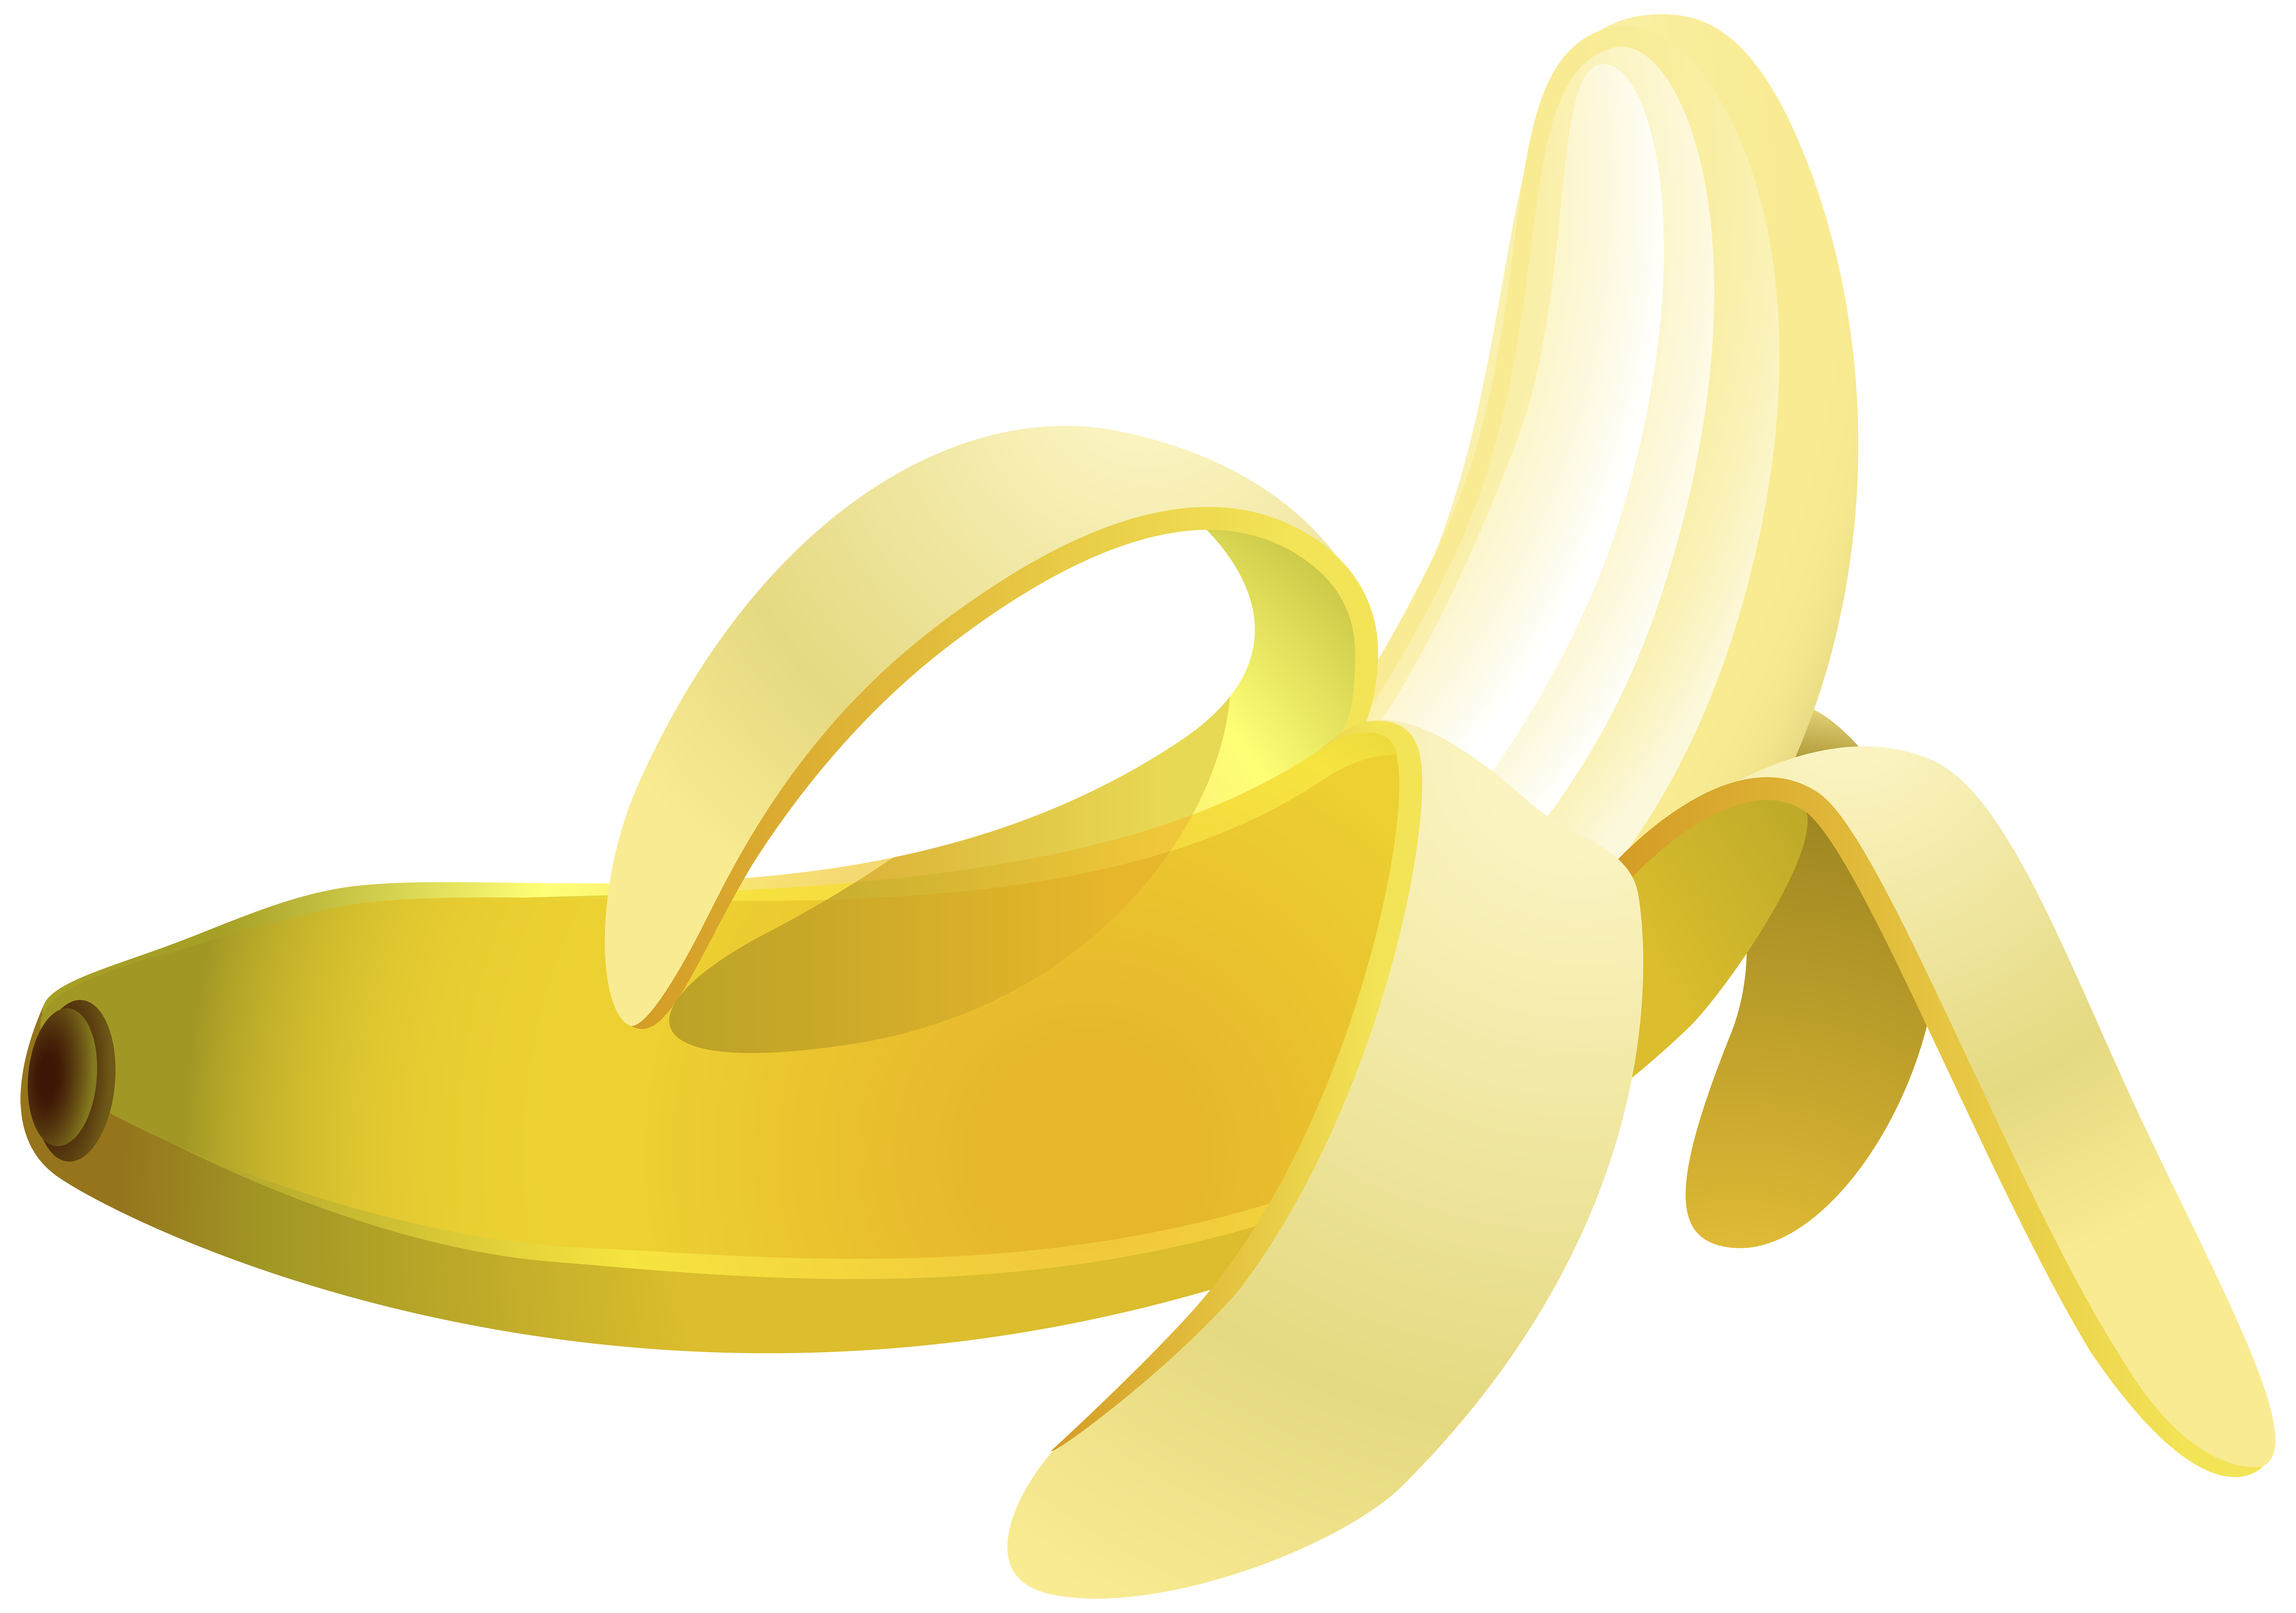 Png clip art gallery. Banana clipart high quality